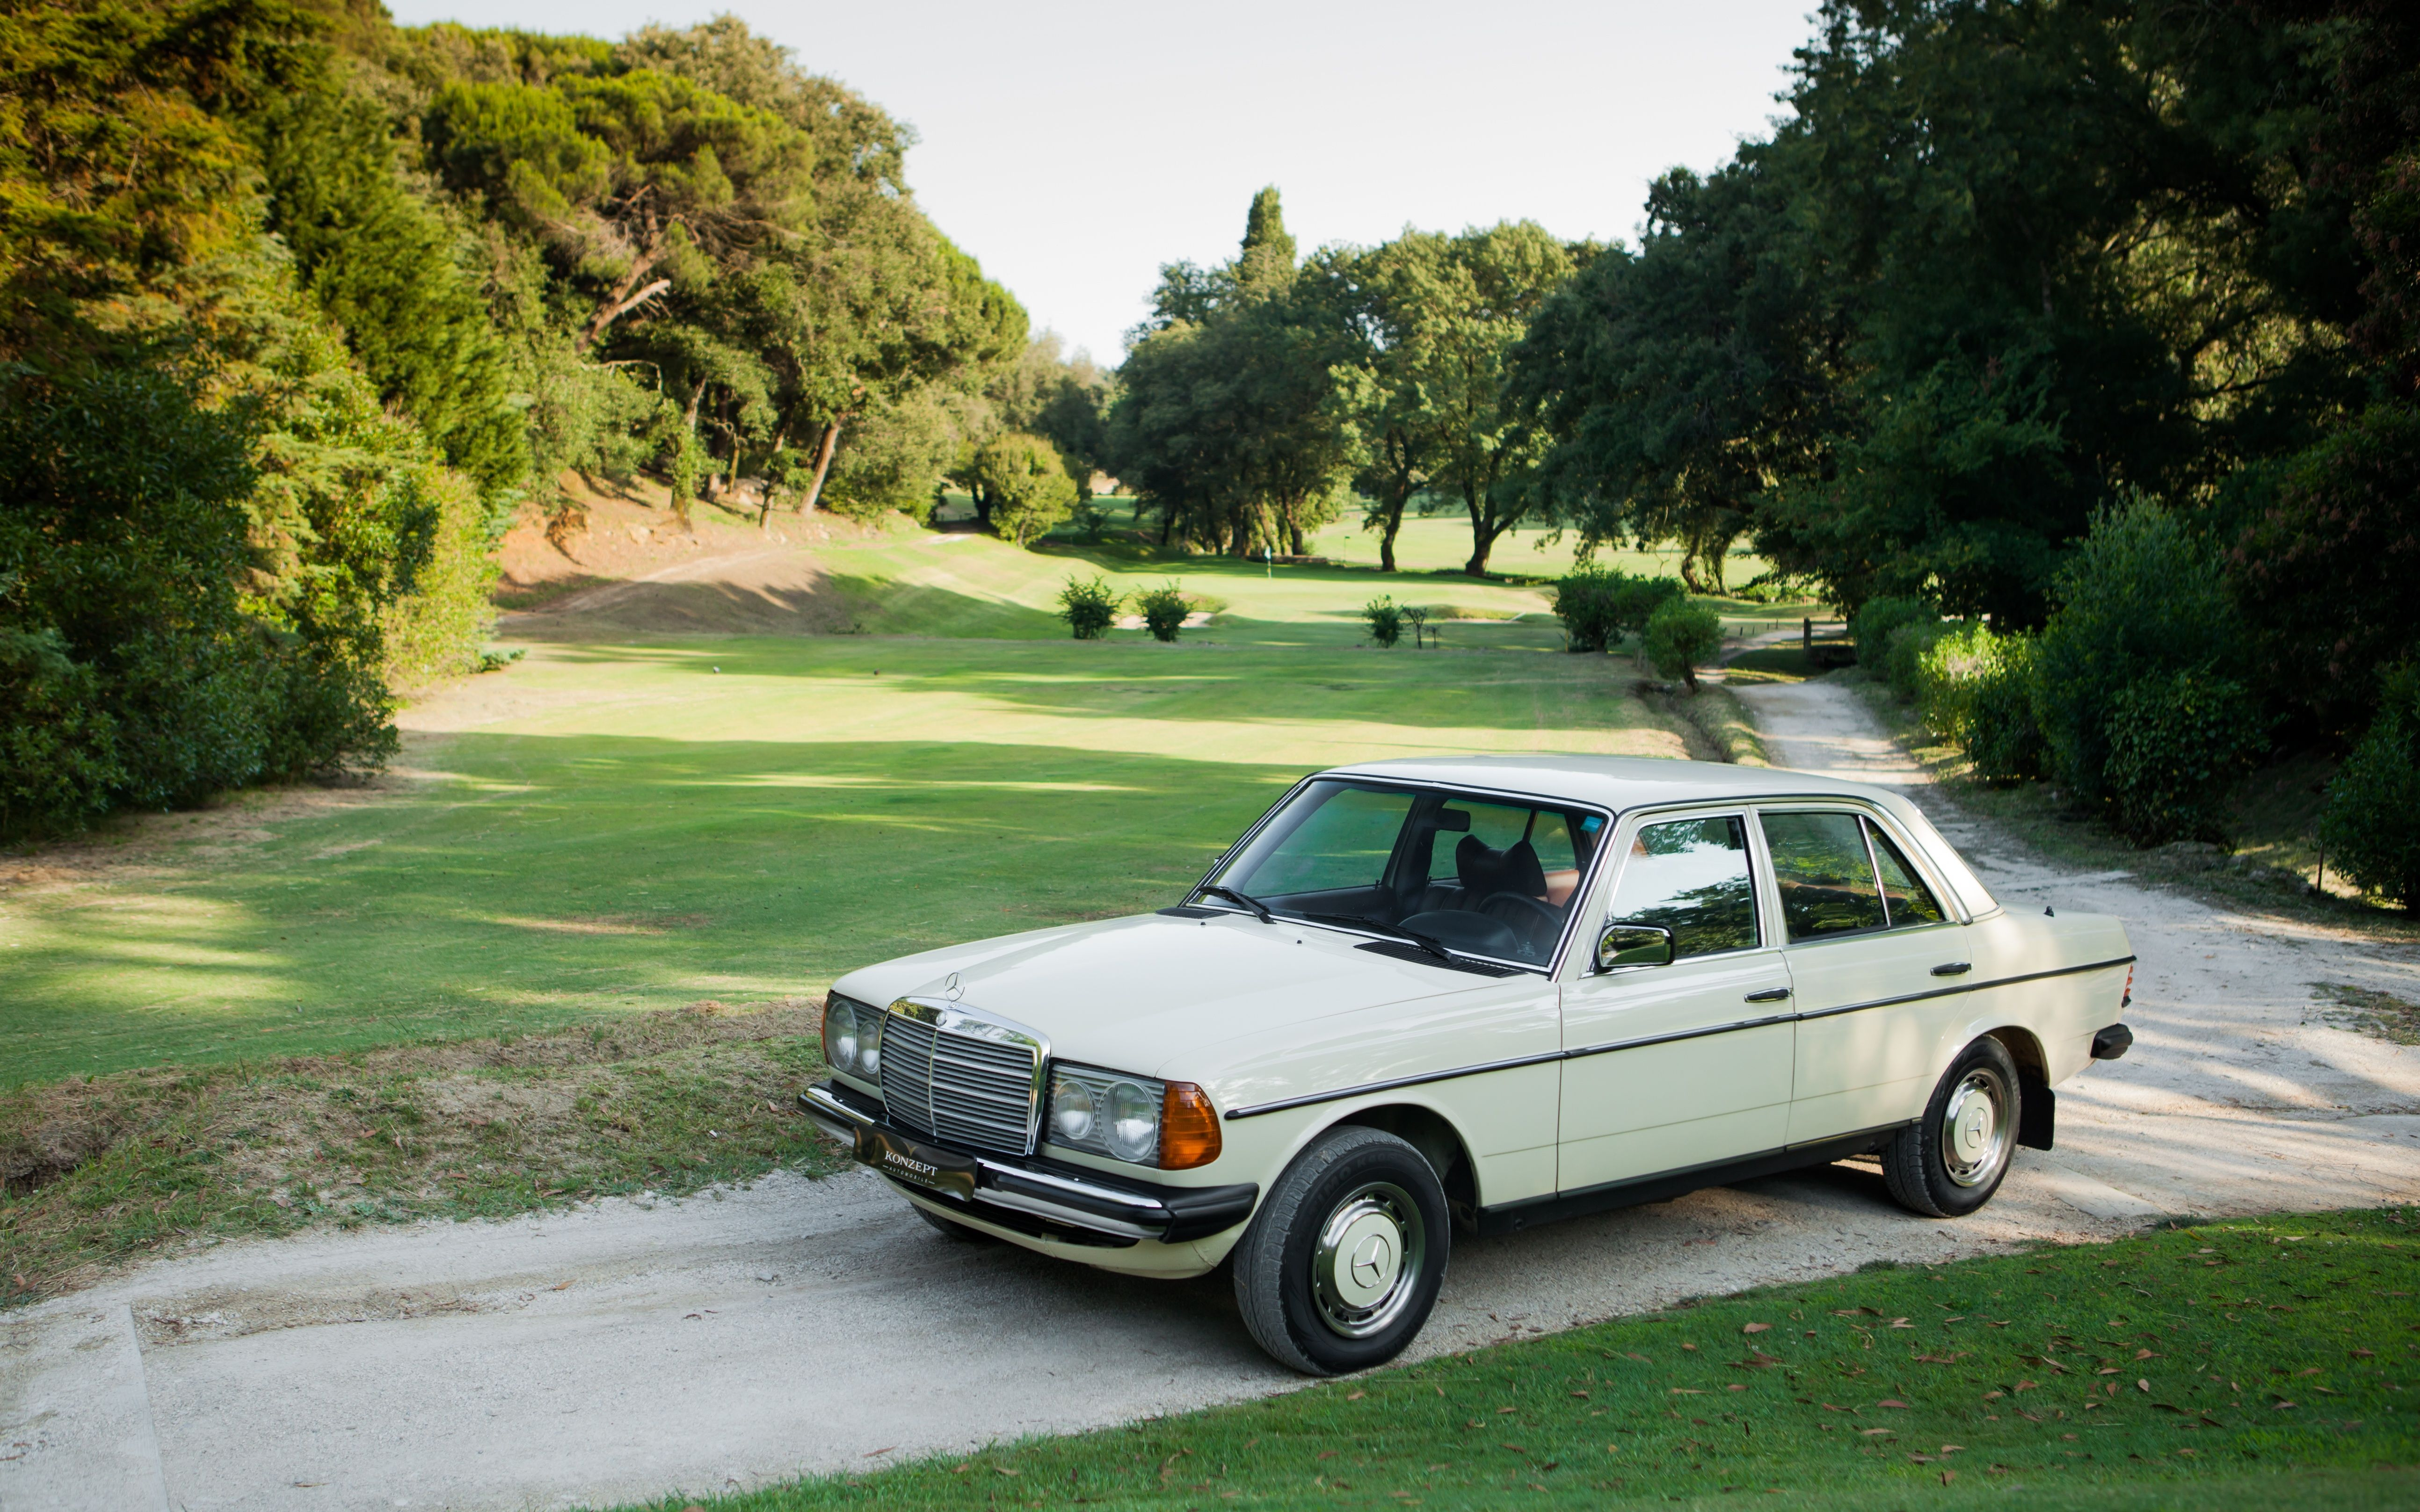 Despite its colour this immaculate W123 was never used as a